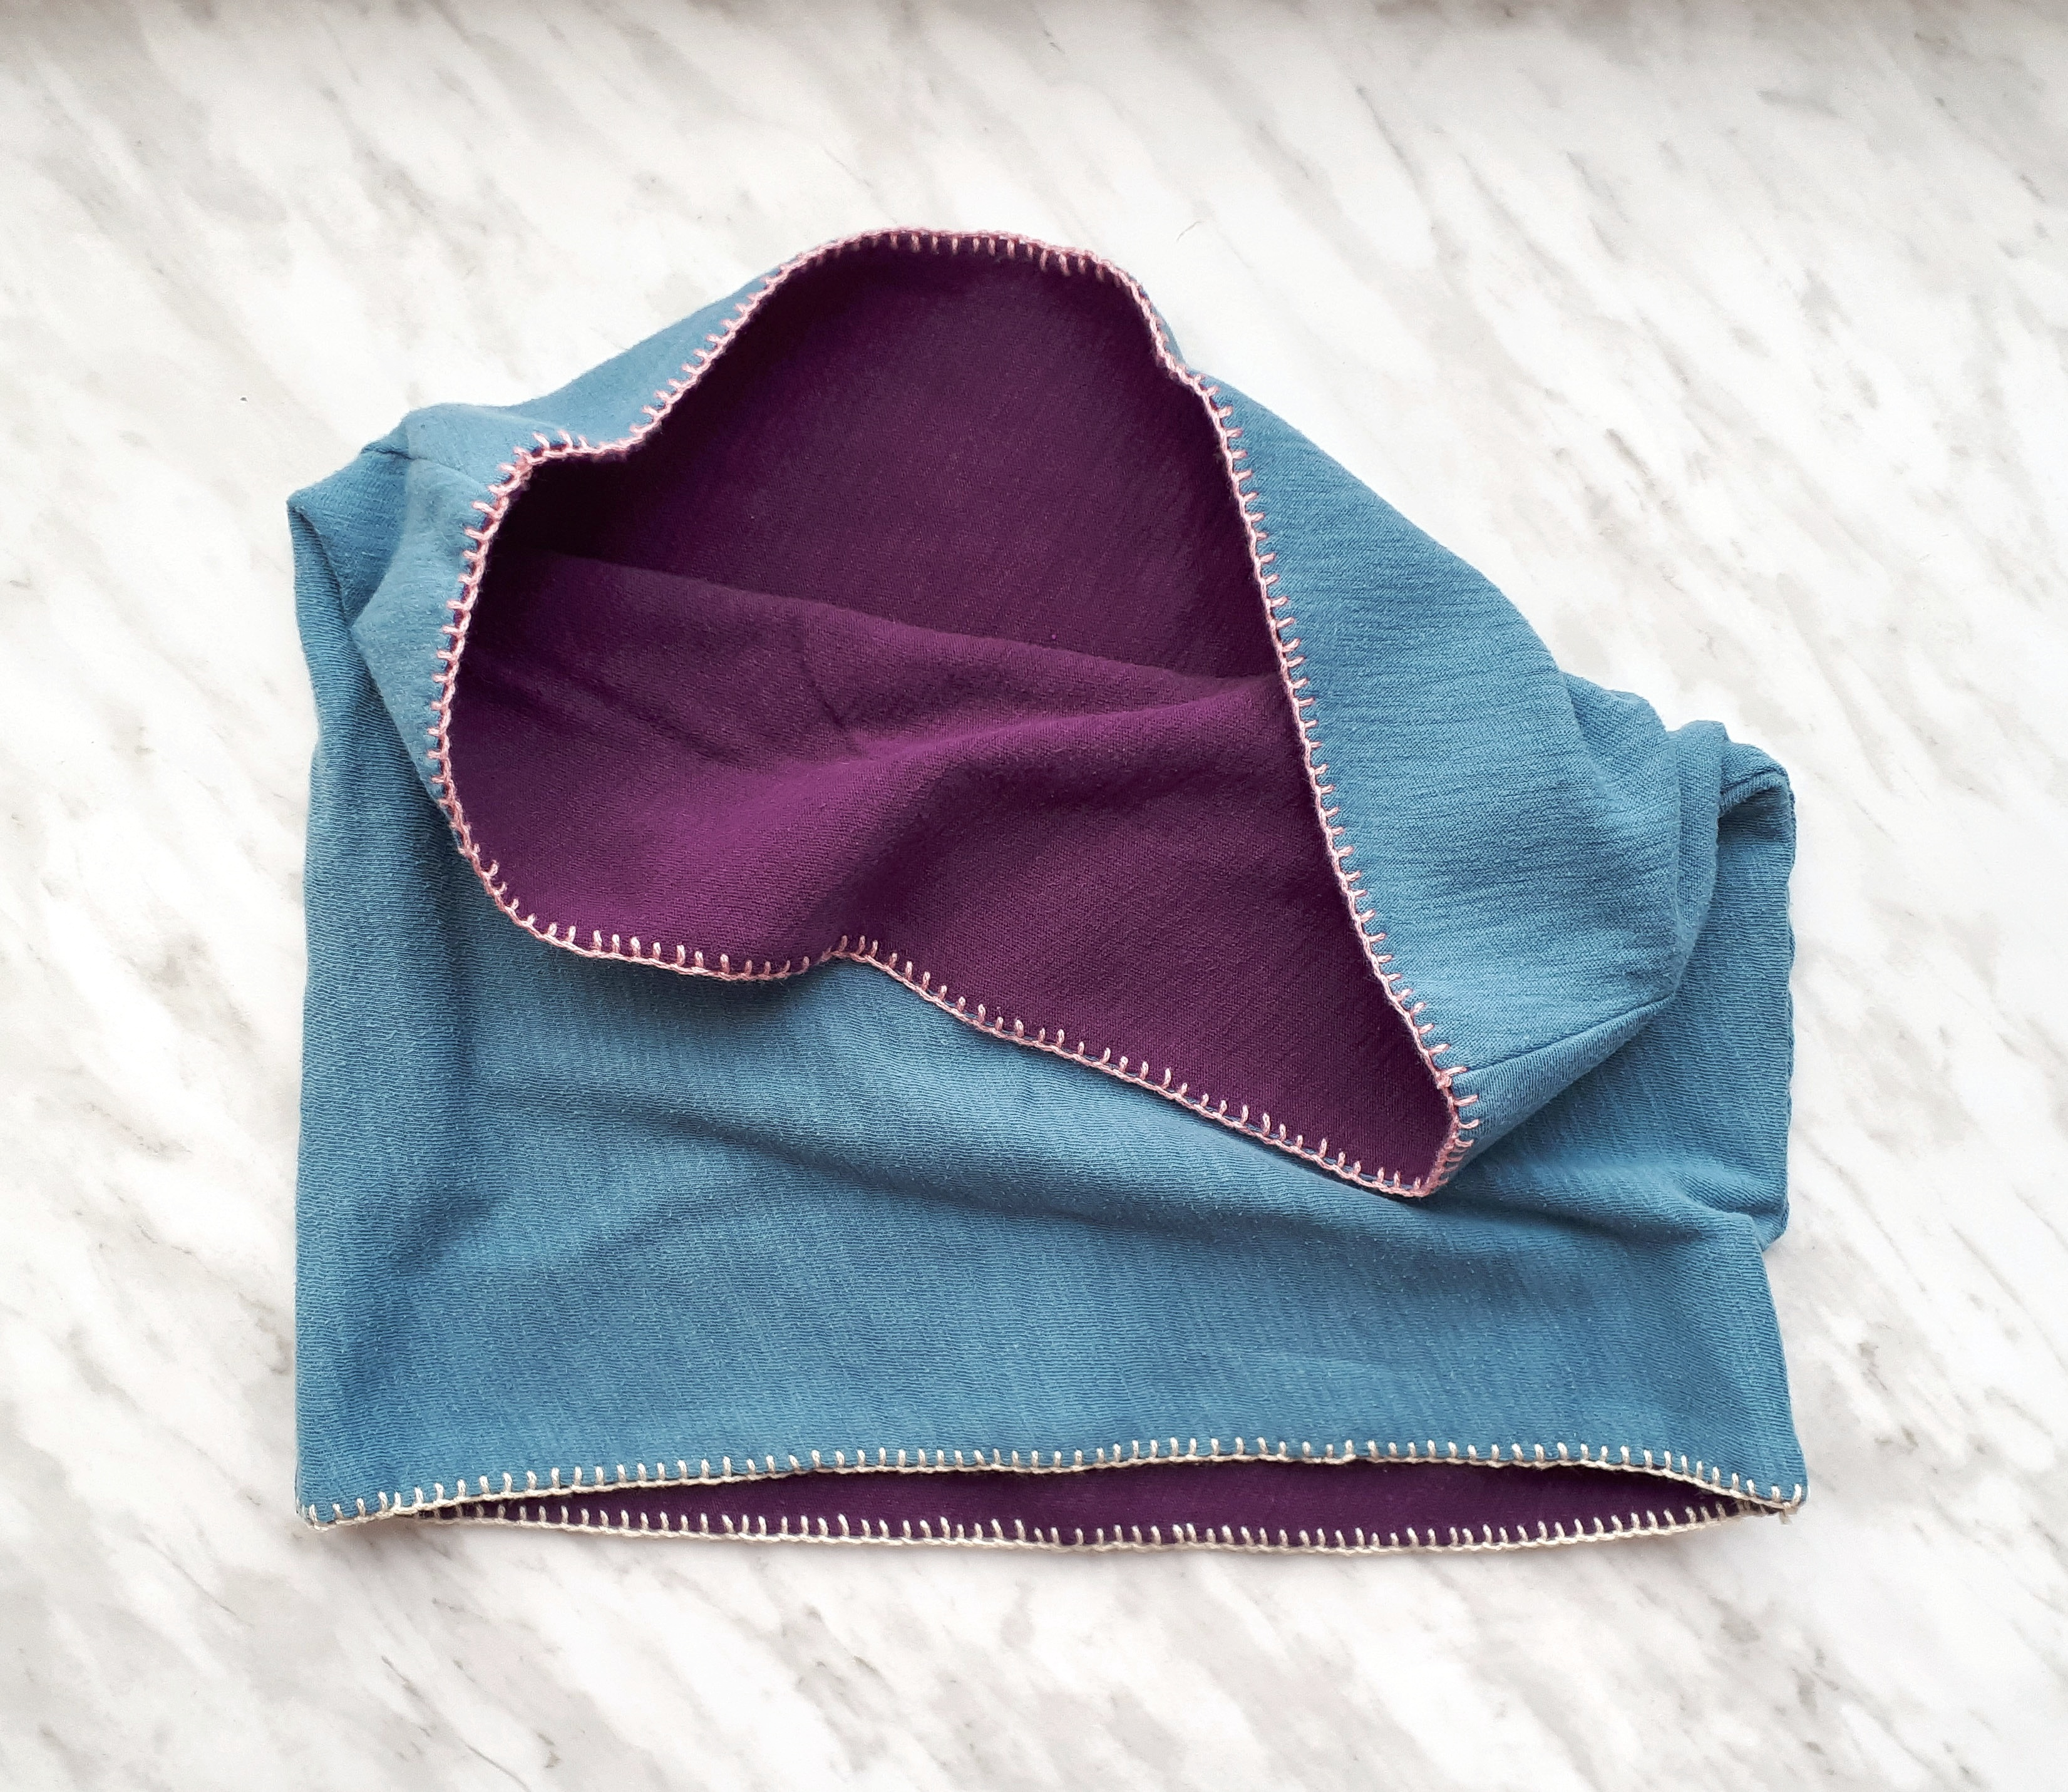 Add a row of blanket stitch to the top and bottom of the cowl